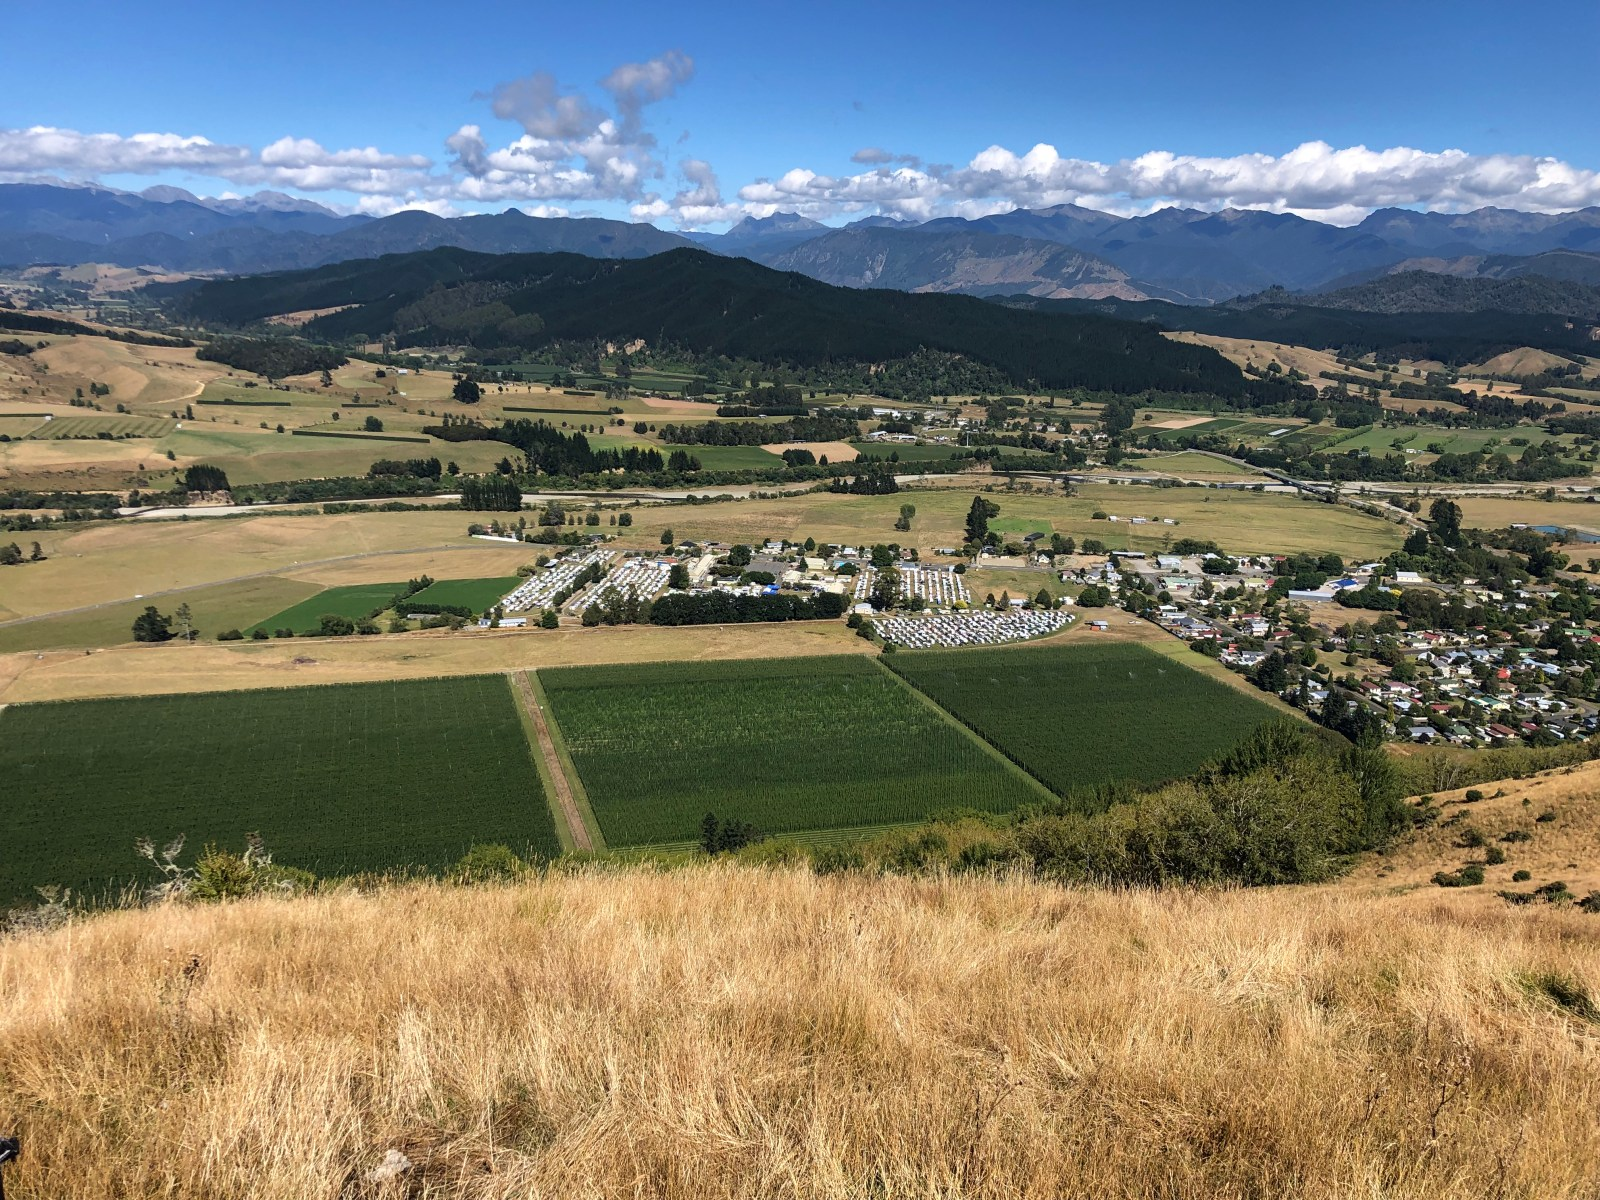 NZMCA Music in the Mountains January 2021 by Steve Thomas